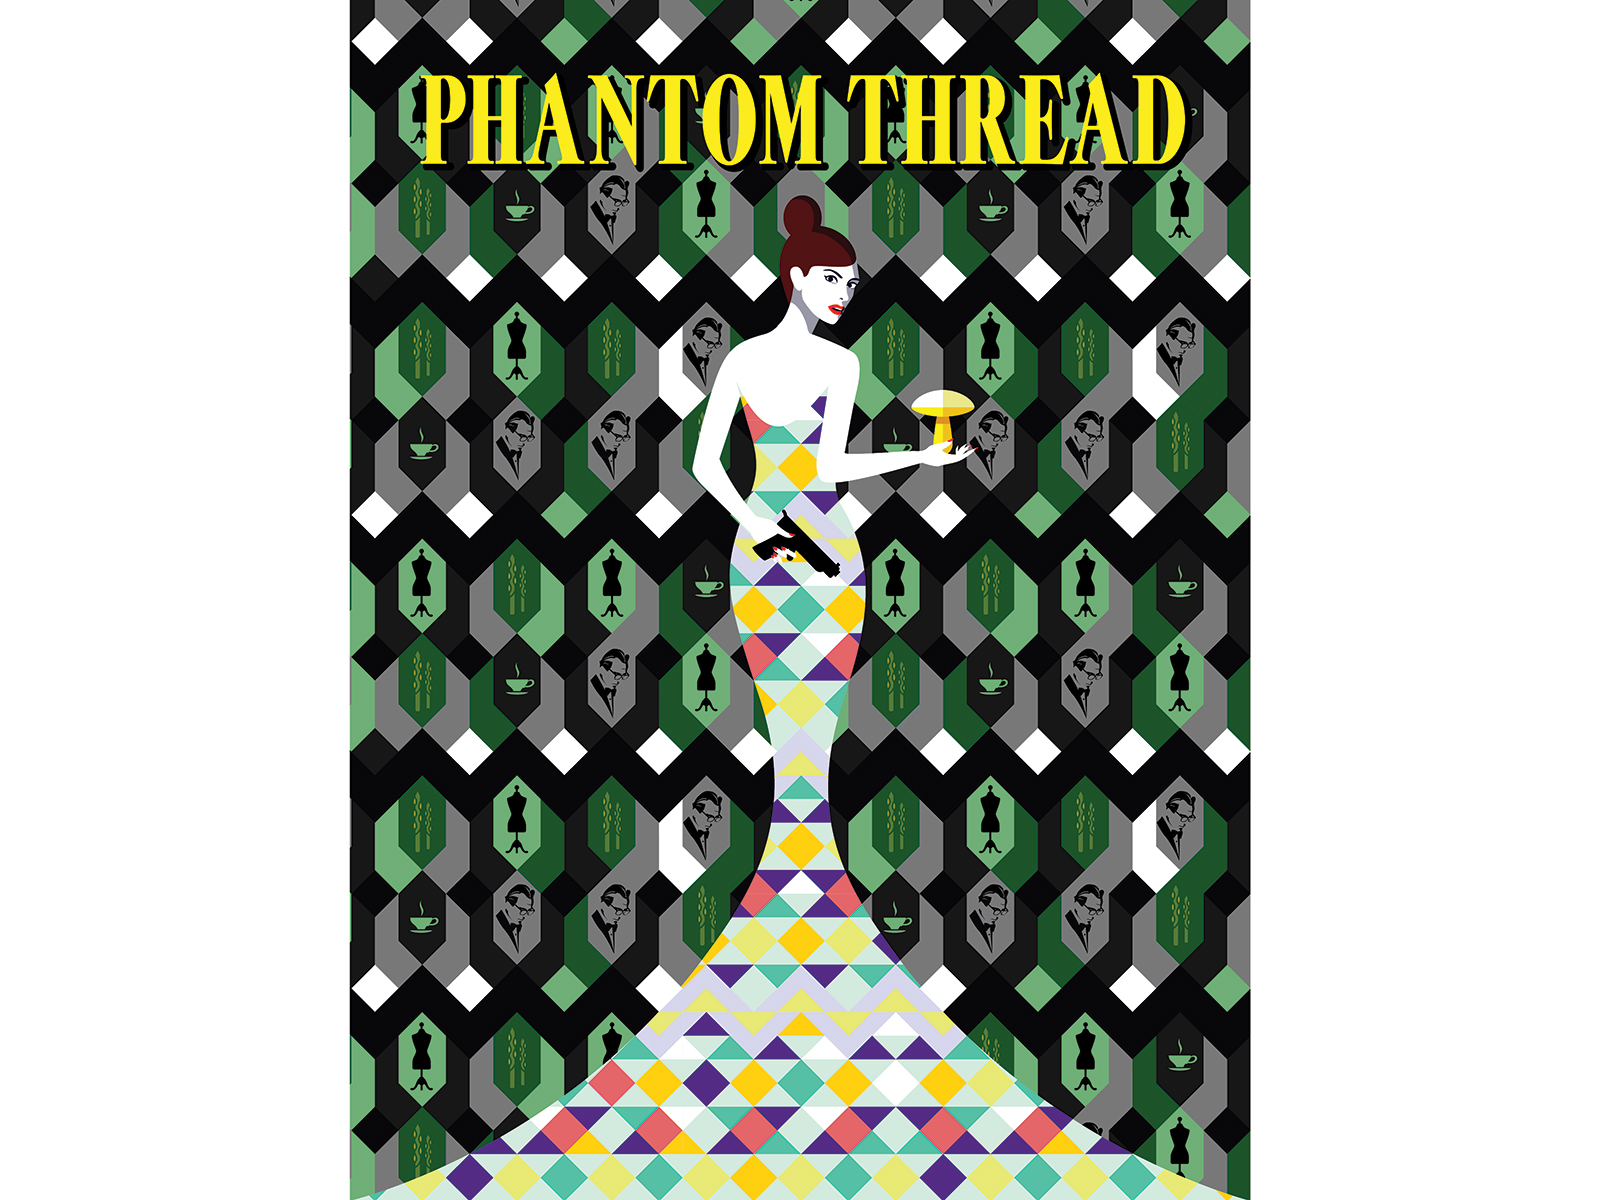 phantom thread movie poster by shutterstock designer